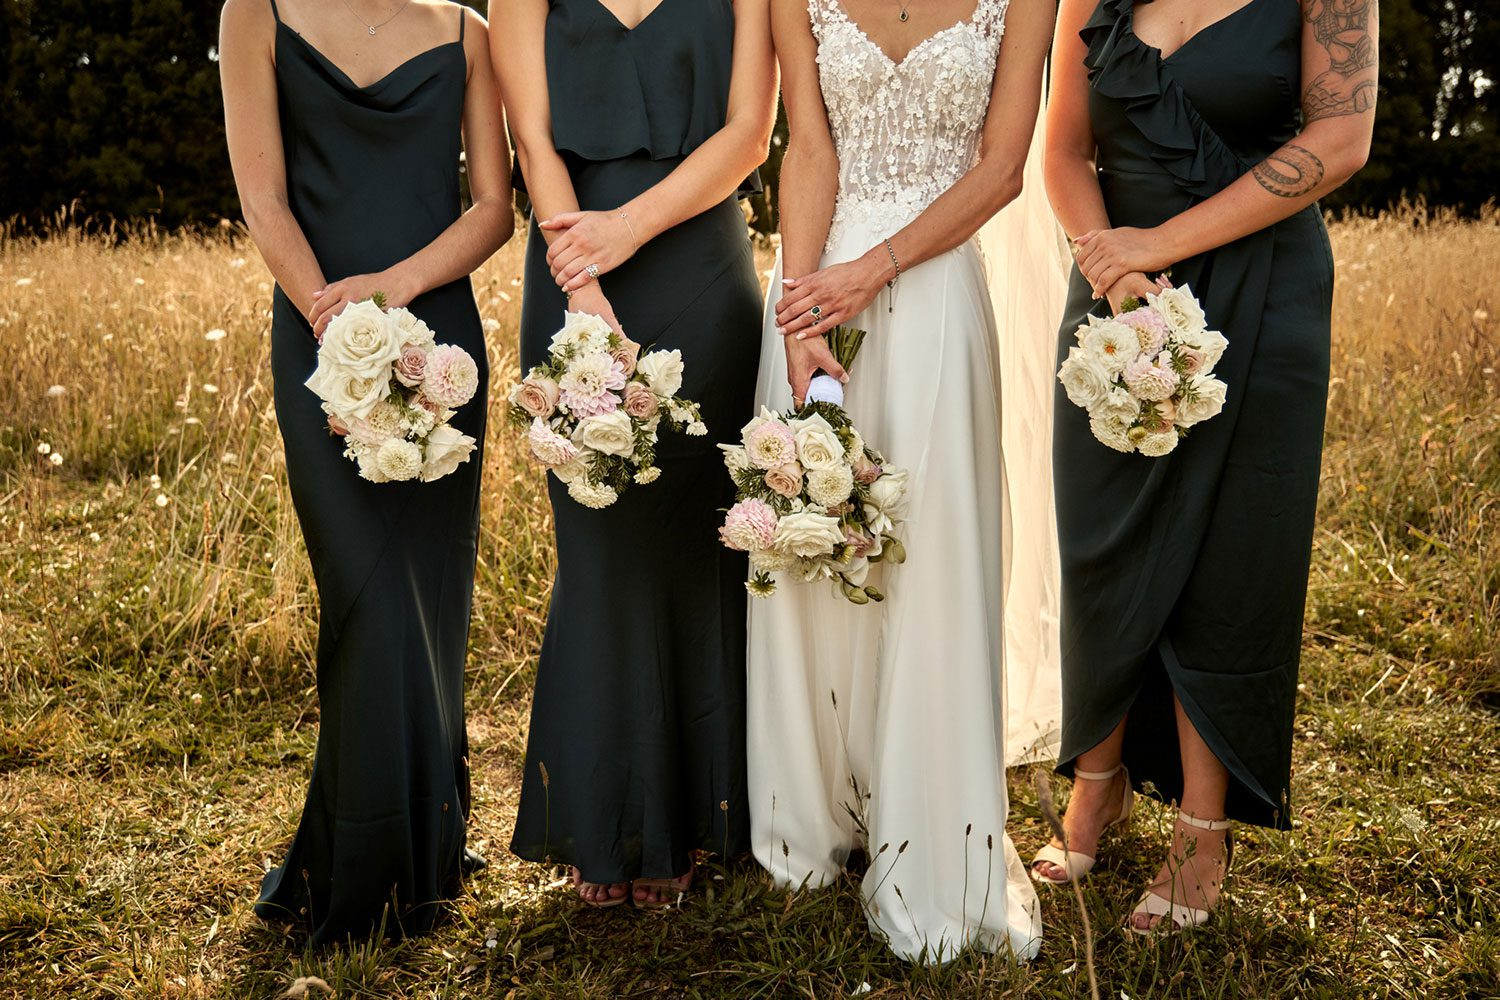 Bride wearing bespoke gown made of silk chiffon with delicate flower lace bodice by Vinka bridal designer Auckland - dress and bouquet shot in field with bridesmaids